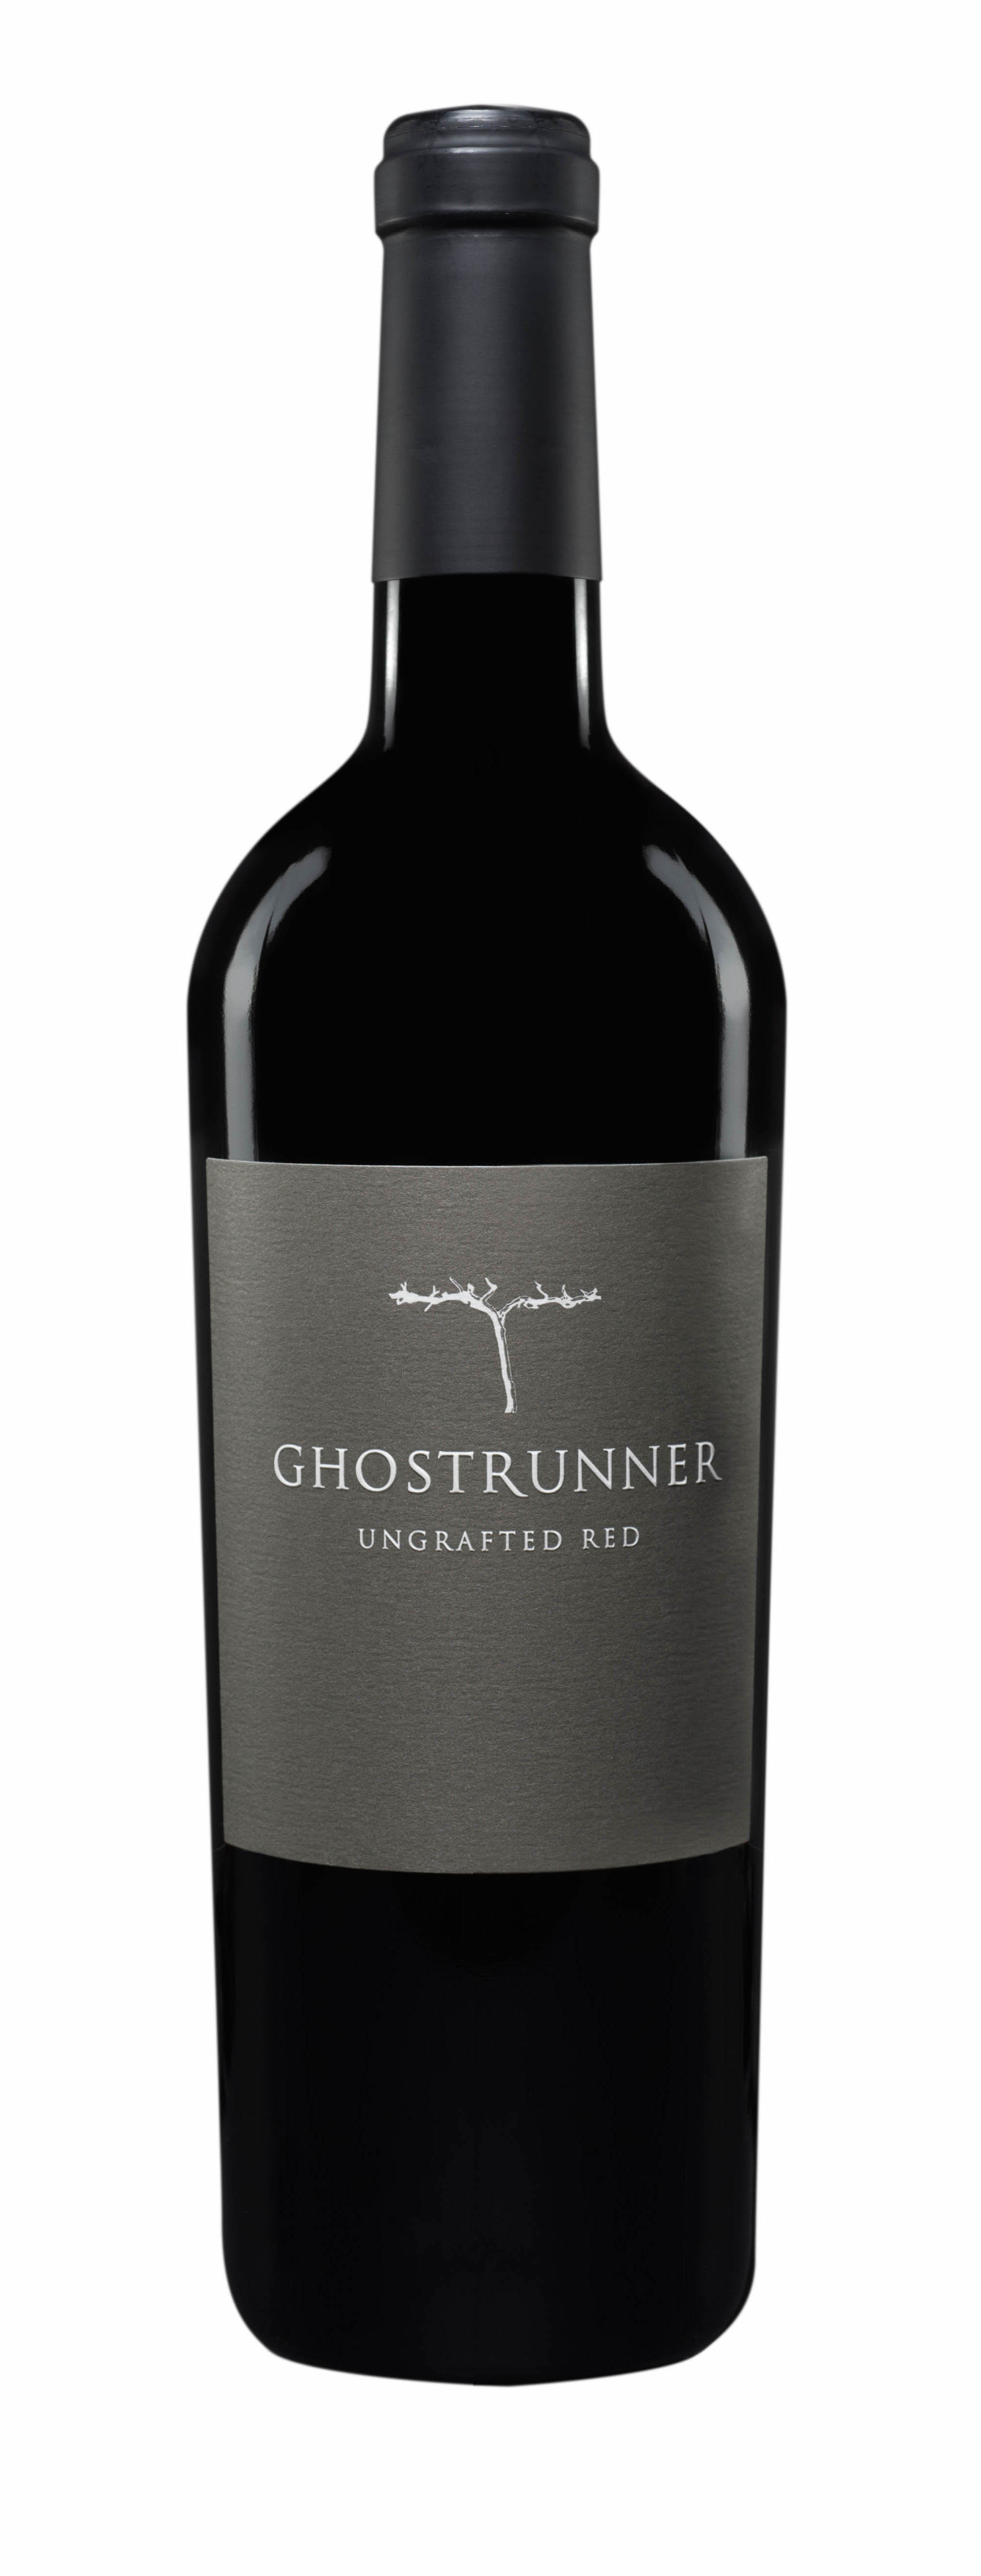 Ghostrunner bottle